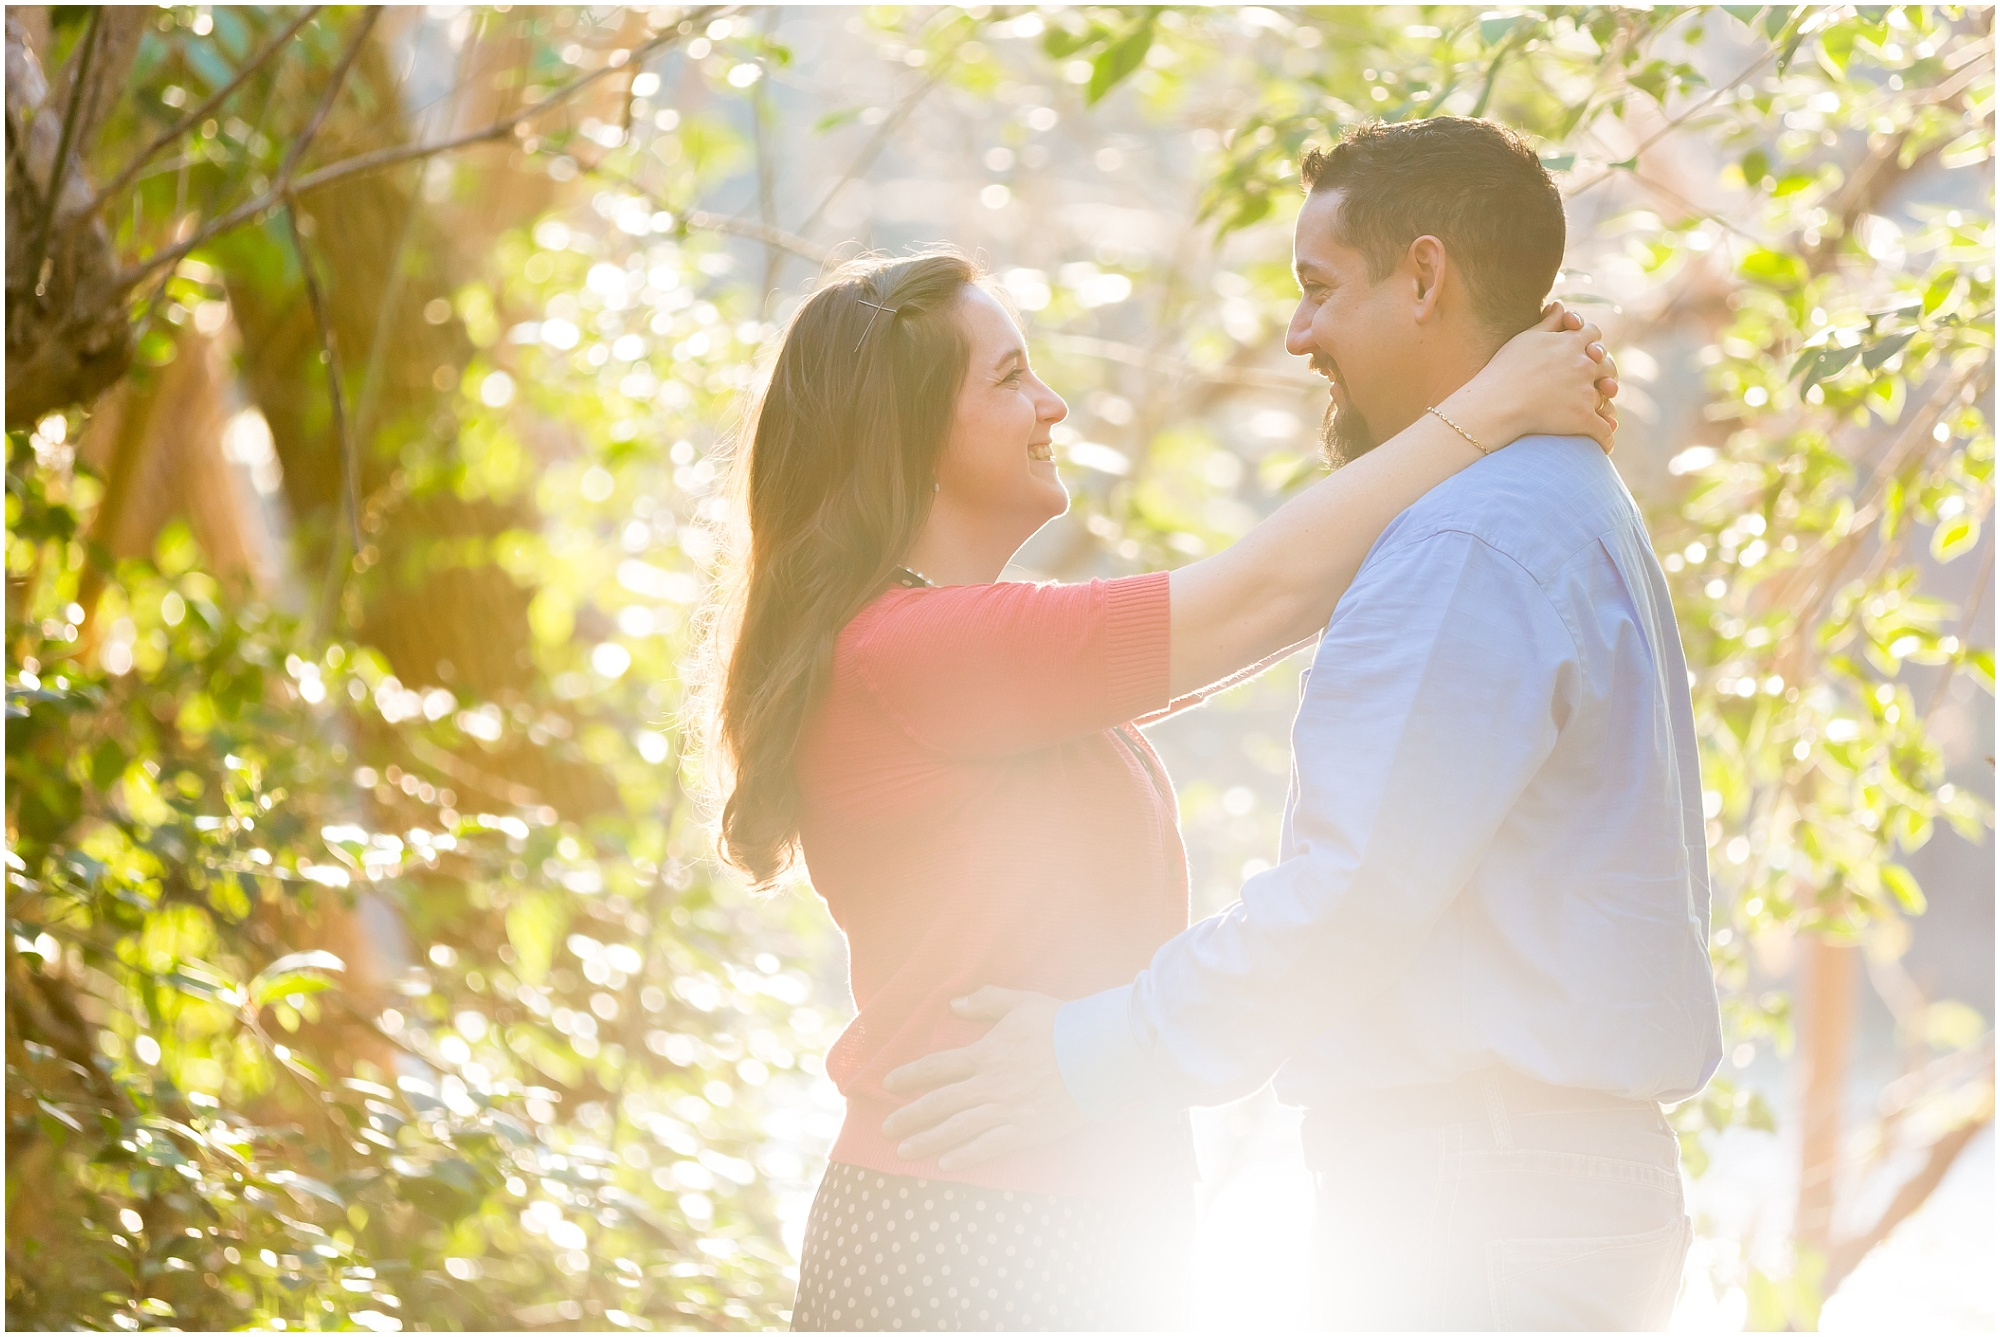 A couple laughs and hugs in the sunlight by the Brazos River in Waco, Texas - Jason & Melaina Photography - www.jasonandmelaina.com